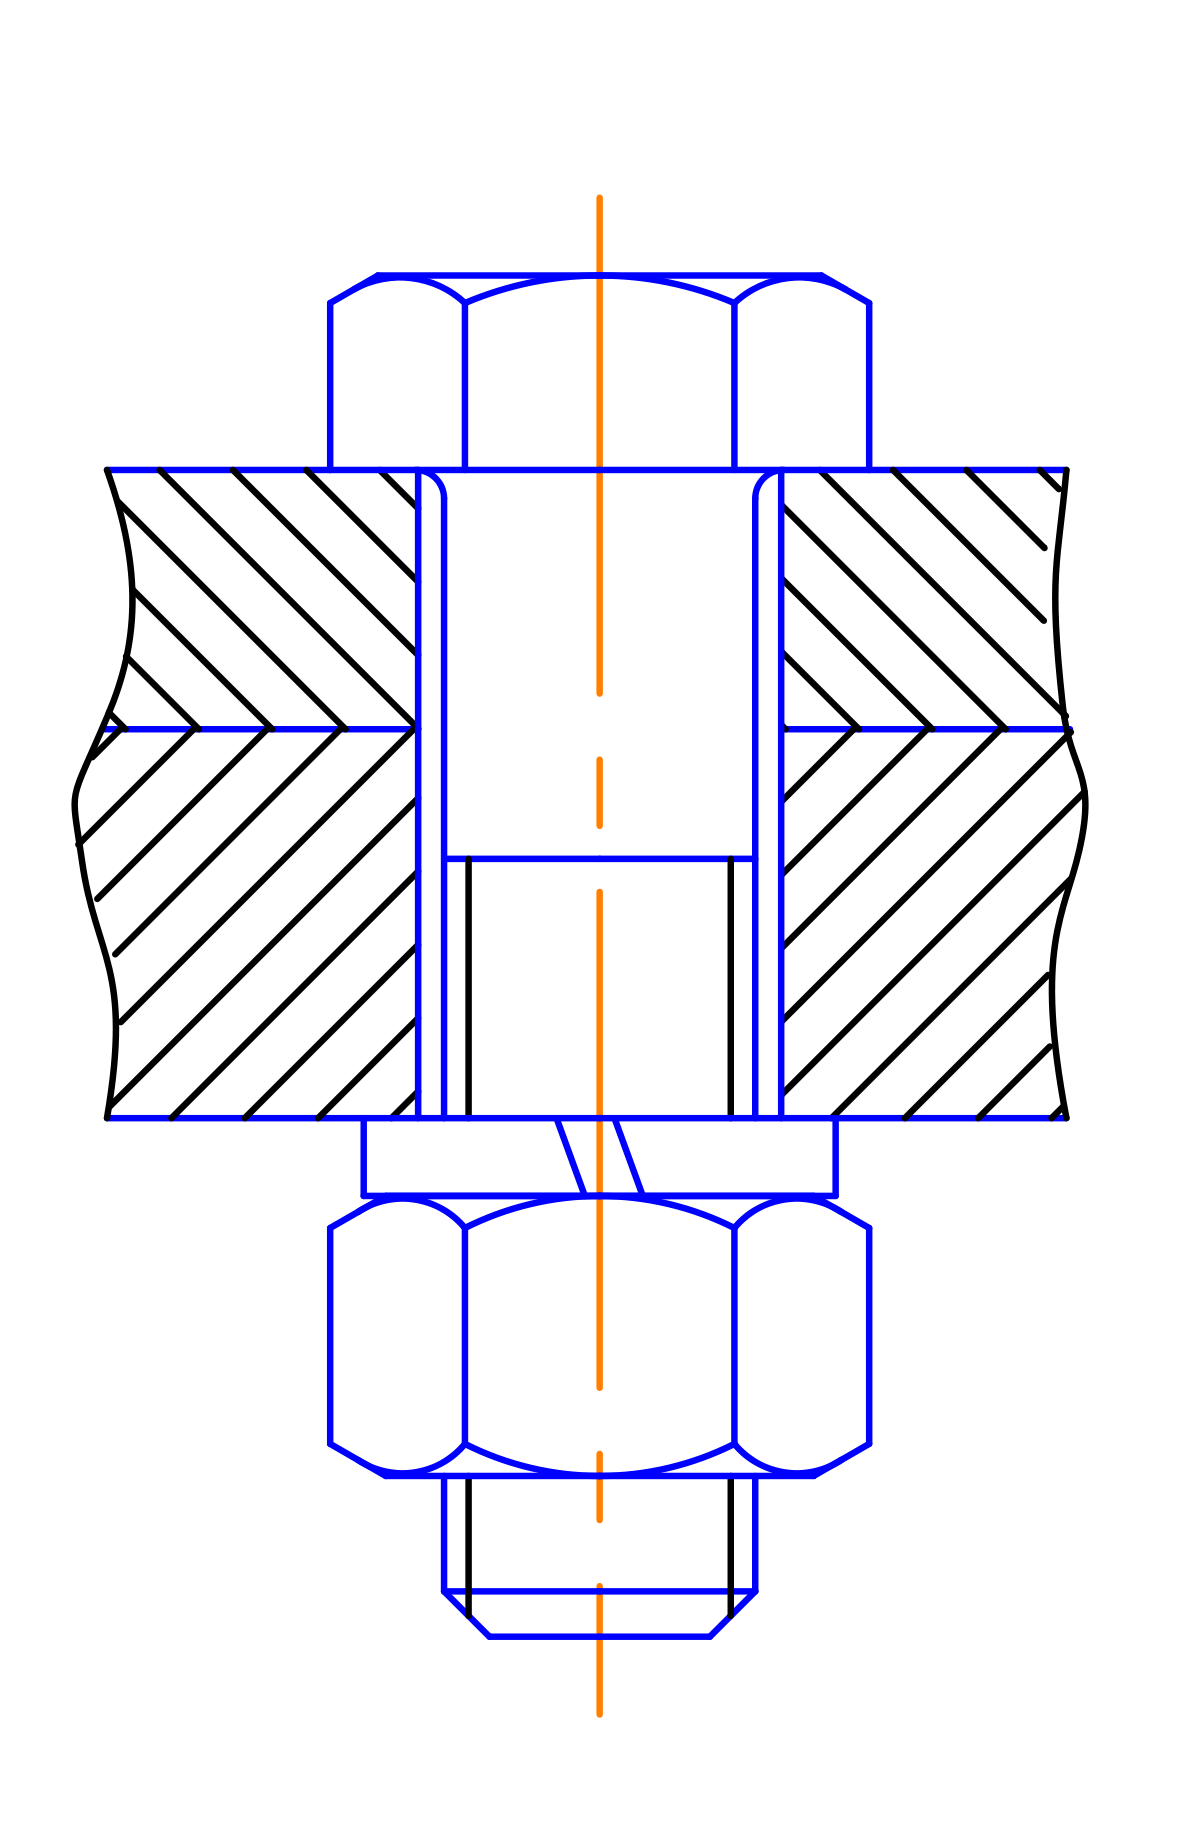 Svg graph cad. Bolted joint wikipedia